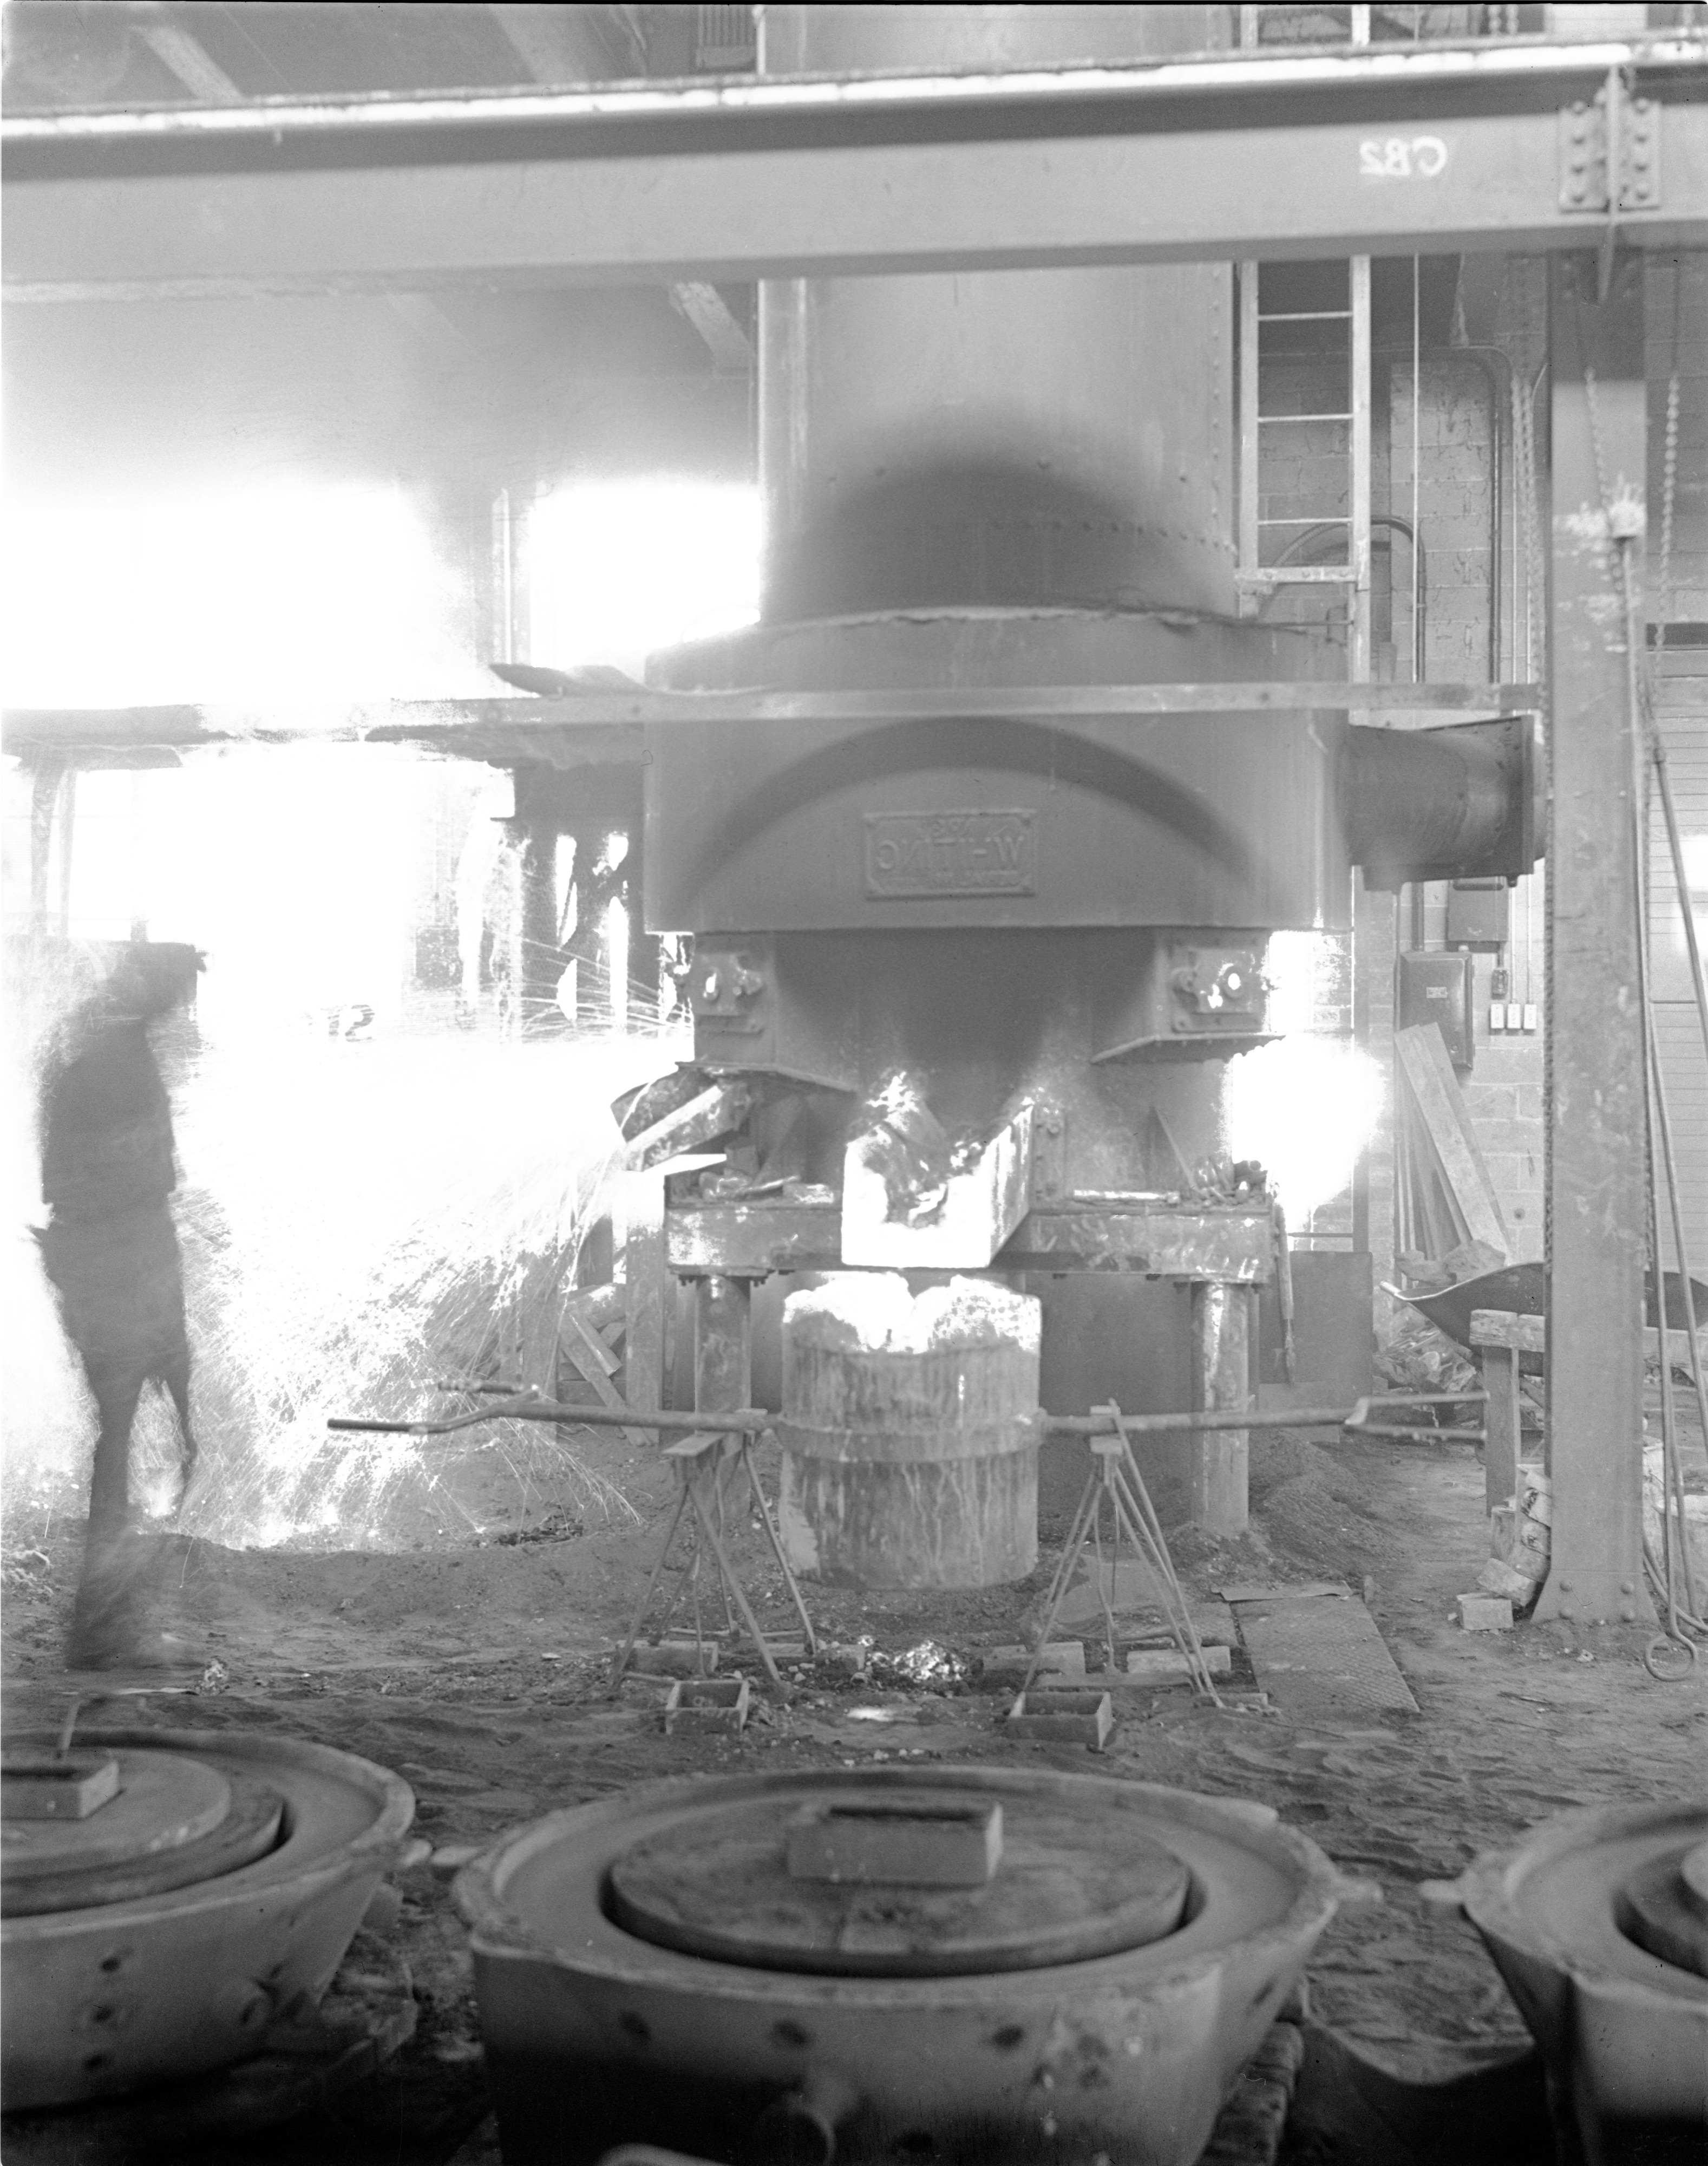 Furnace At The Ann Arbor Foundry, February 1954 image